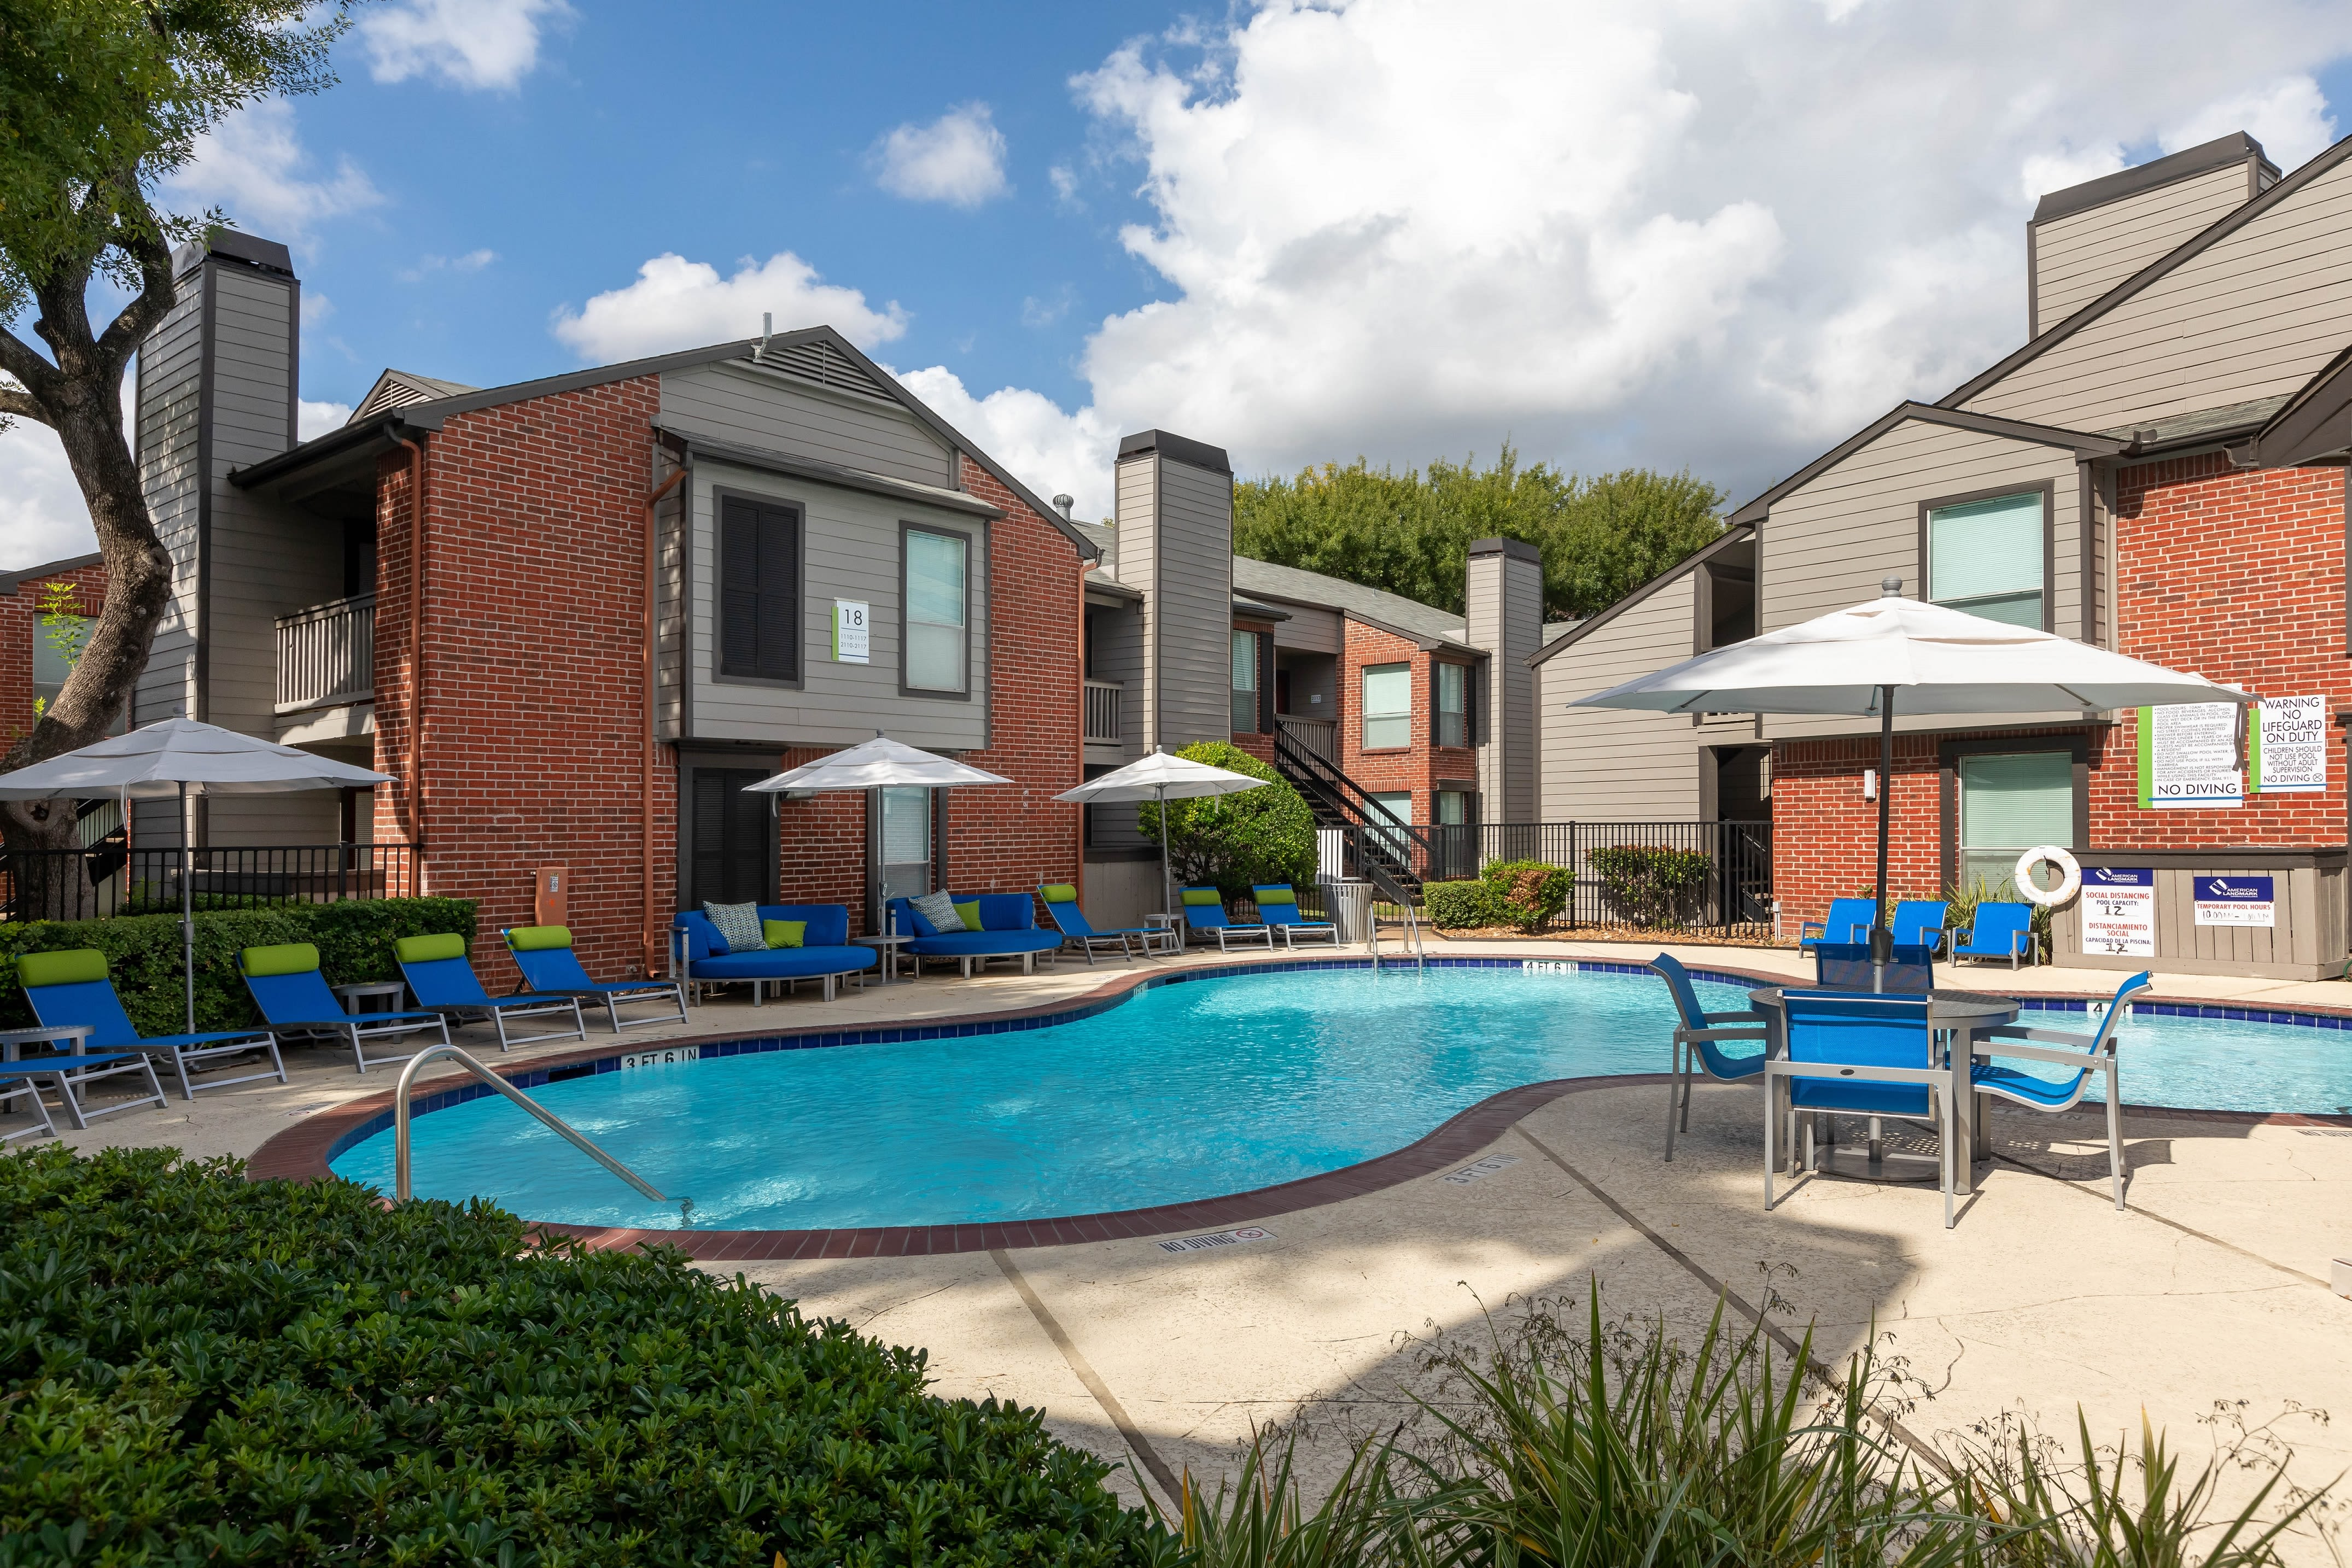 View virtual tour of the pool at Finley West in Houston, Texas